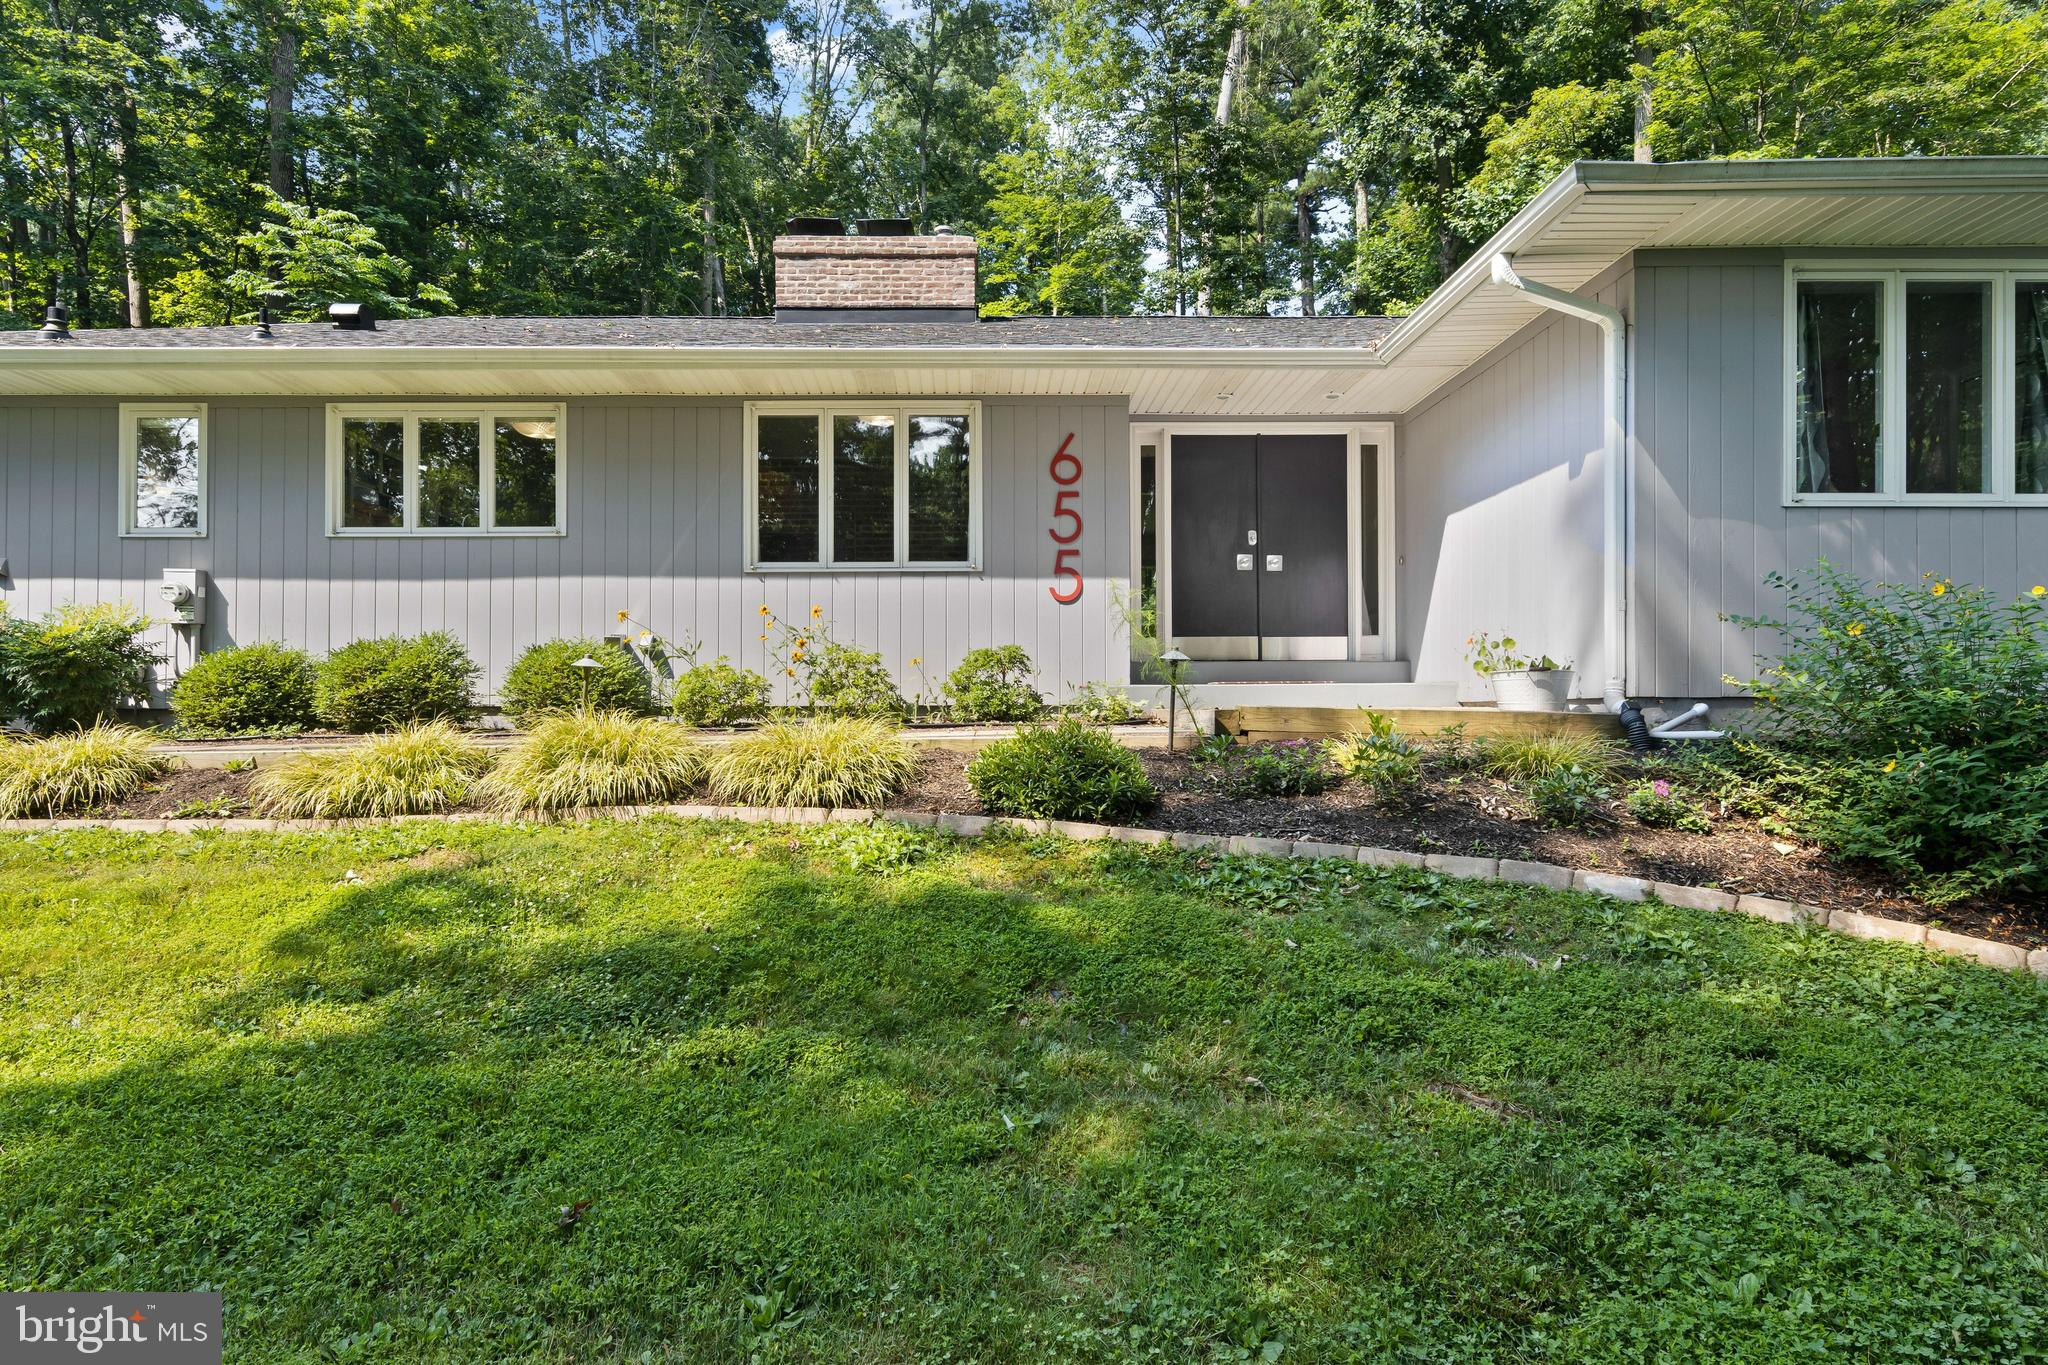 Classic mid-century modern style home in a great neighborhood in Radnor Township! This 3-4 BD, 2/1 BA ranch offers one-floor living, fresh paint, neutral décor, gleaming refinished wood floors, and expansive walls of windows which provide sweeping views. Trees were removed and trimmed so that this home is light and bright, yet the natural setting is still very private. Slate-tiled Entrance Hall opens to expansive Great Room with brick fireplace and ample space for dining, relaxing, and entertaining. The updated Kitchen features new stainless appliances, new granite counters, new subway tile backsplash, and new flooring. This area is also accented by a built-in brick grill. Enjoy casual family dining in the adjacent Breakfast Area which also opens to the Entrance Hall. Nearby is a Family Room/Study with built-ins that would also work well as a private Office, Playroom, Music Room, Exercise Room, or even a 4th Bedroom. This side of the home also has a main floor Laundry/Mudroom Area and indoor access to the oversized Garage. The bedroom wing is privately located on the opposite side of the house. The very large Master Bedroom has 2 closets (one walk-in) and wonderful views of the rear yard. The Master Bathroom has been completely renovated and features new fixtures, a wide vanity and large glass-enclosed shower. Two more Hall Bedrooms share a Hall Bath, which has new fixtures and a large new vanity as well. A Powder Room and several closets, including a very large walk-in closet in the bedroom wing (which could be used as a computer area) complete the main level. Downstairs is a large unfinished basement which offers ample space for recreation and storage, and great potential for finishing into additional living space. A 2nd set of stairs conveniently lead from the basement to the 2-car Garage. New roof (2018), new whole house generator (2017), new gas Heat and A/C (2020), new gas hot water heater (2018), and MANY other improvements. There is a patio area to the left 